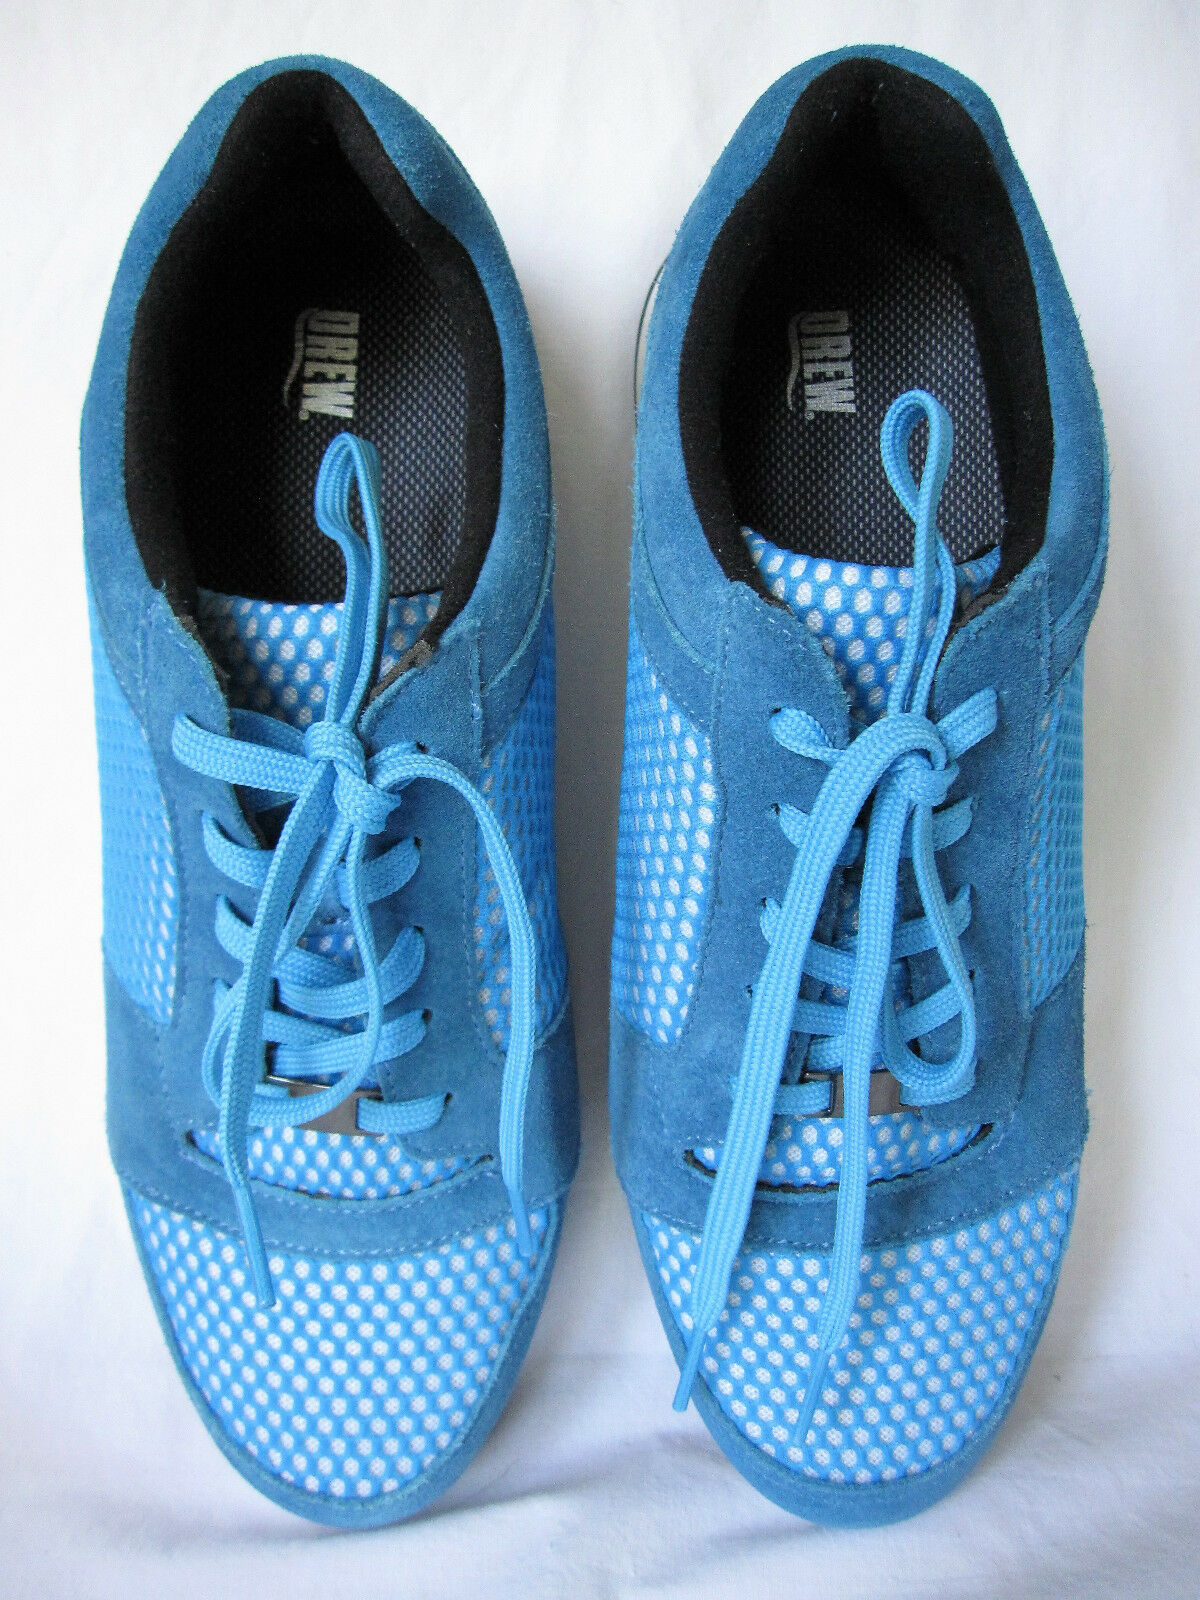 Drew Gemini bluee Suede Walking shoes Leather & Textile Upper Size 13 Med NEW